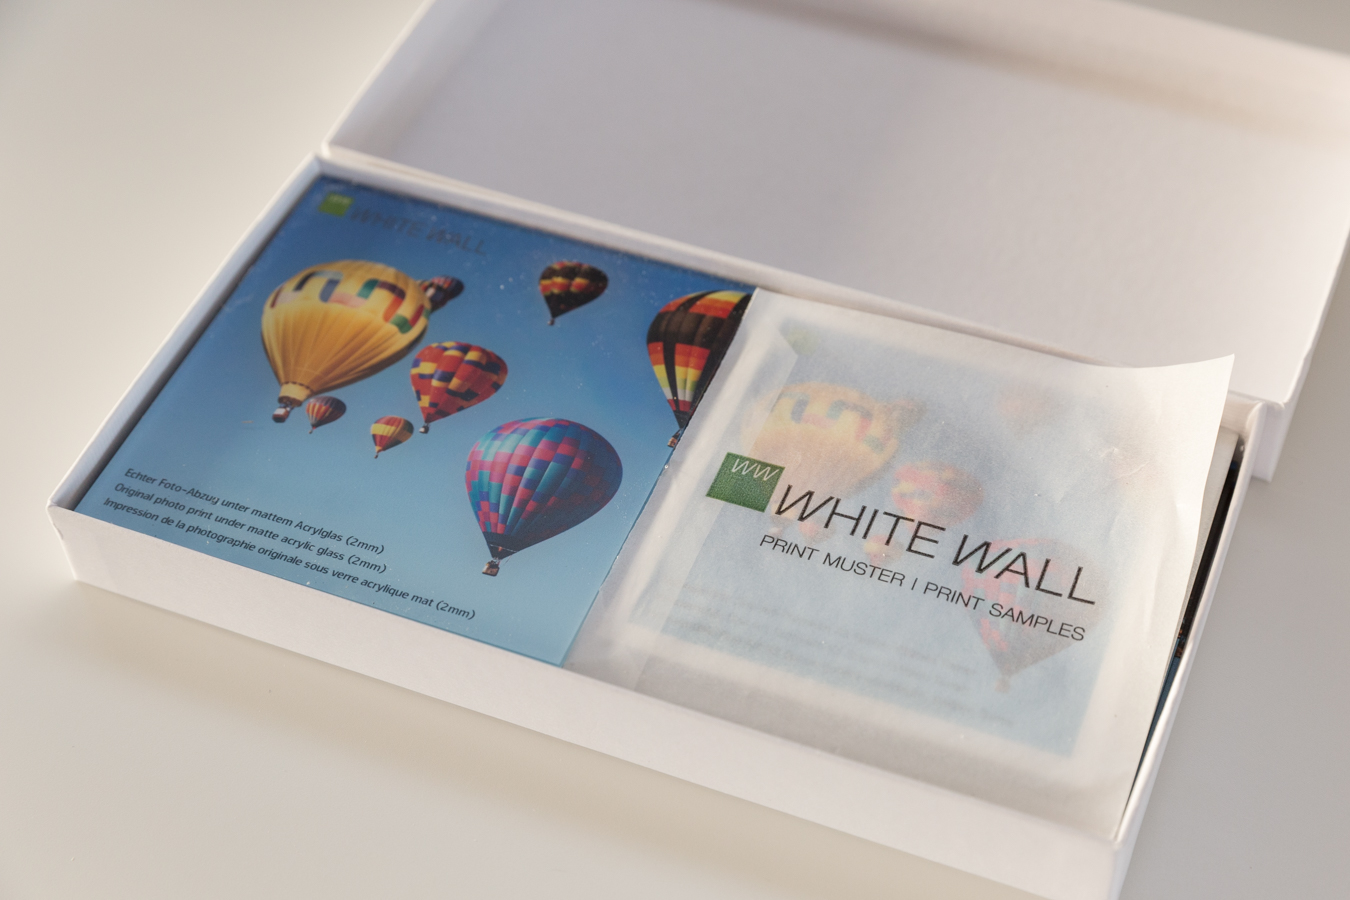 WhiteWall's comprehensive print sample pack